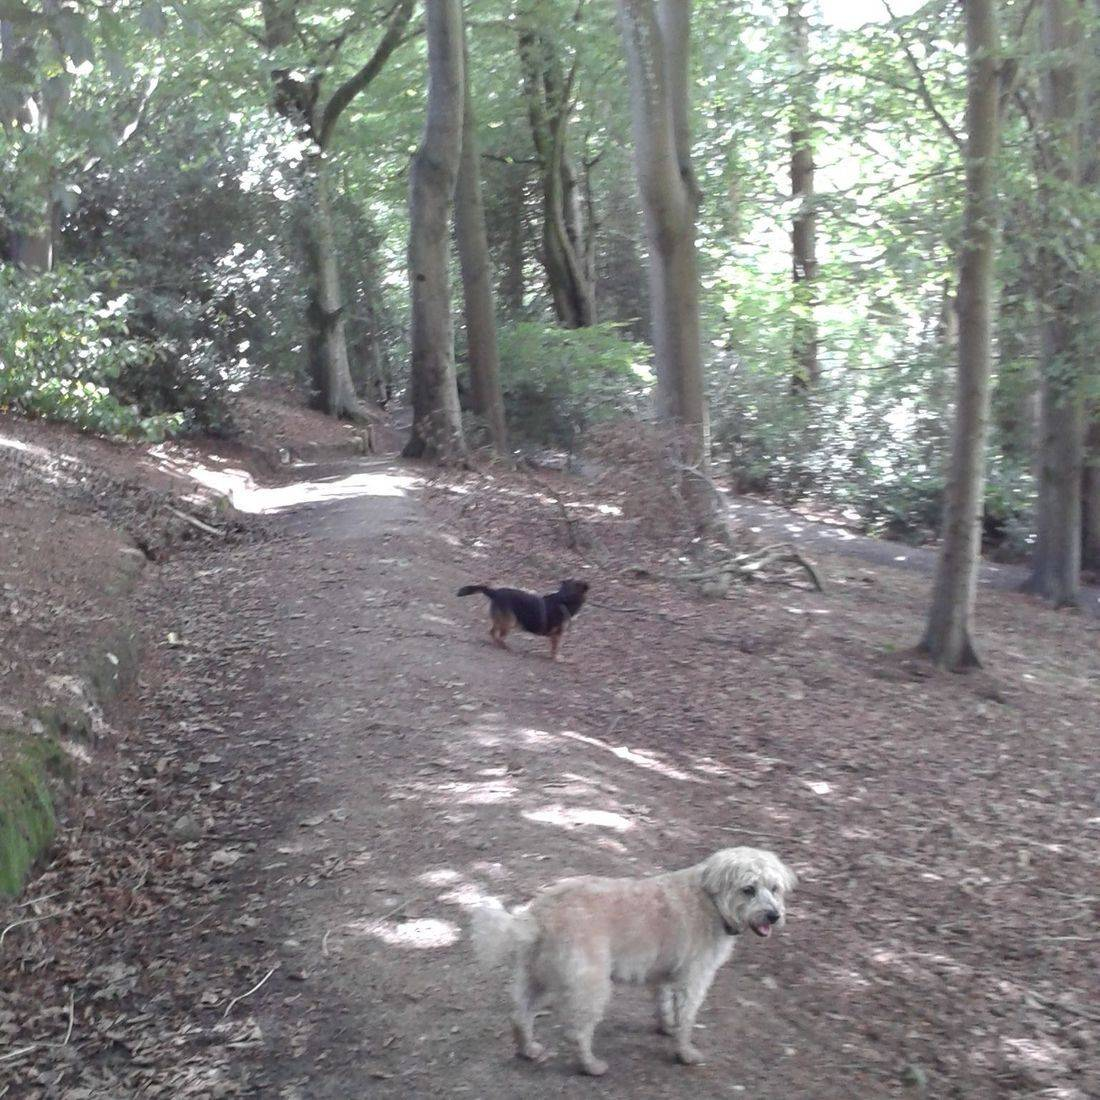 Dogs listening in the woods